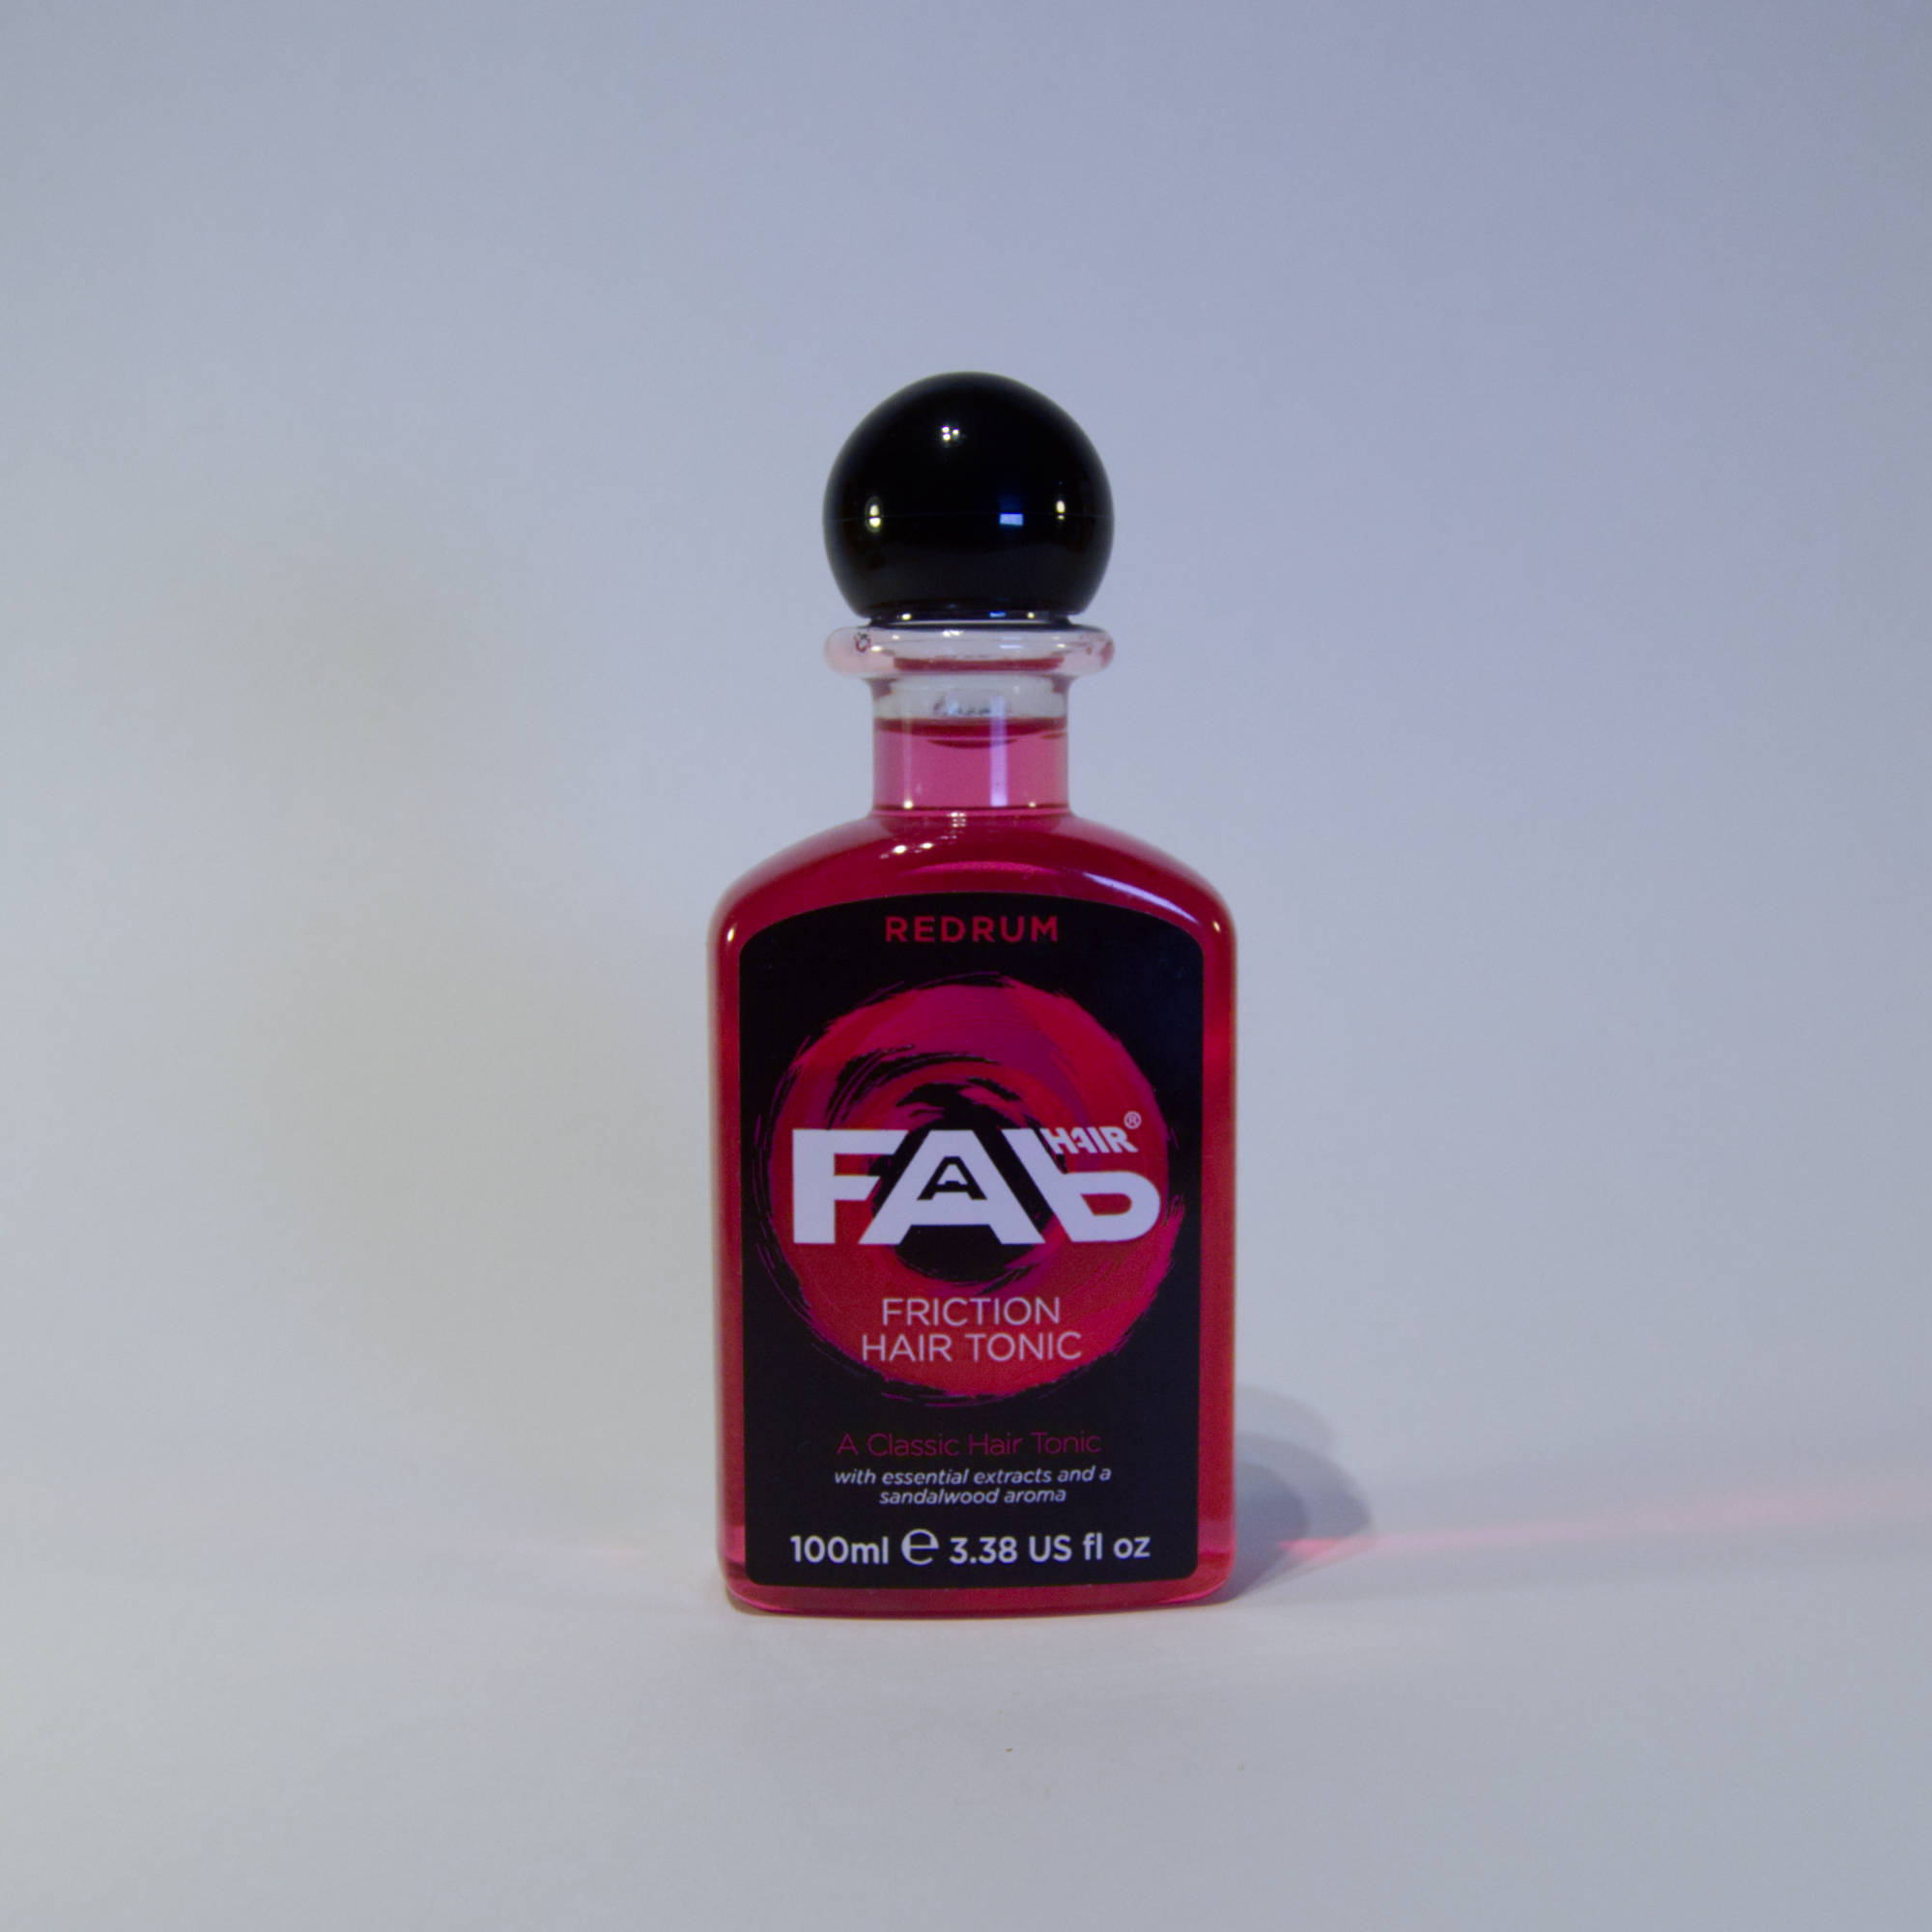 100ml bottle of Redrum flavoured FAB friction hair tonic